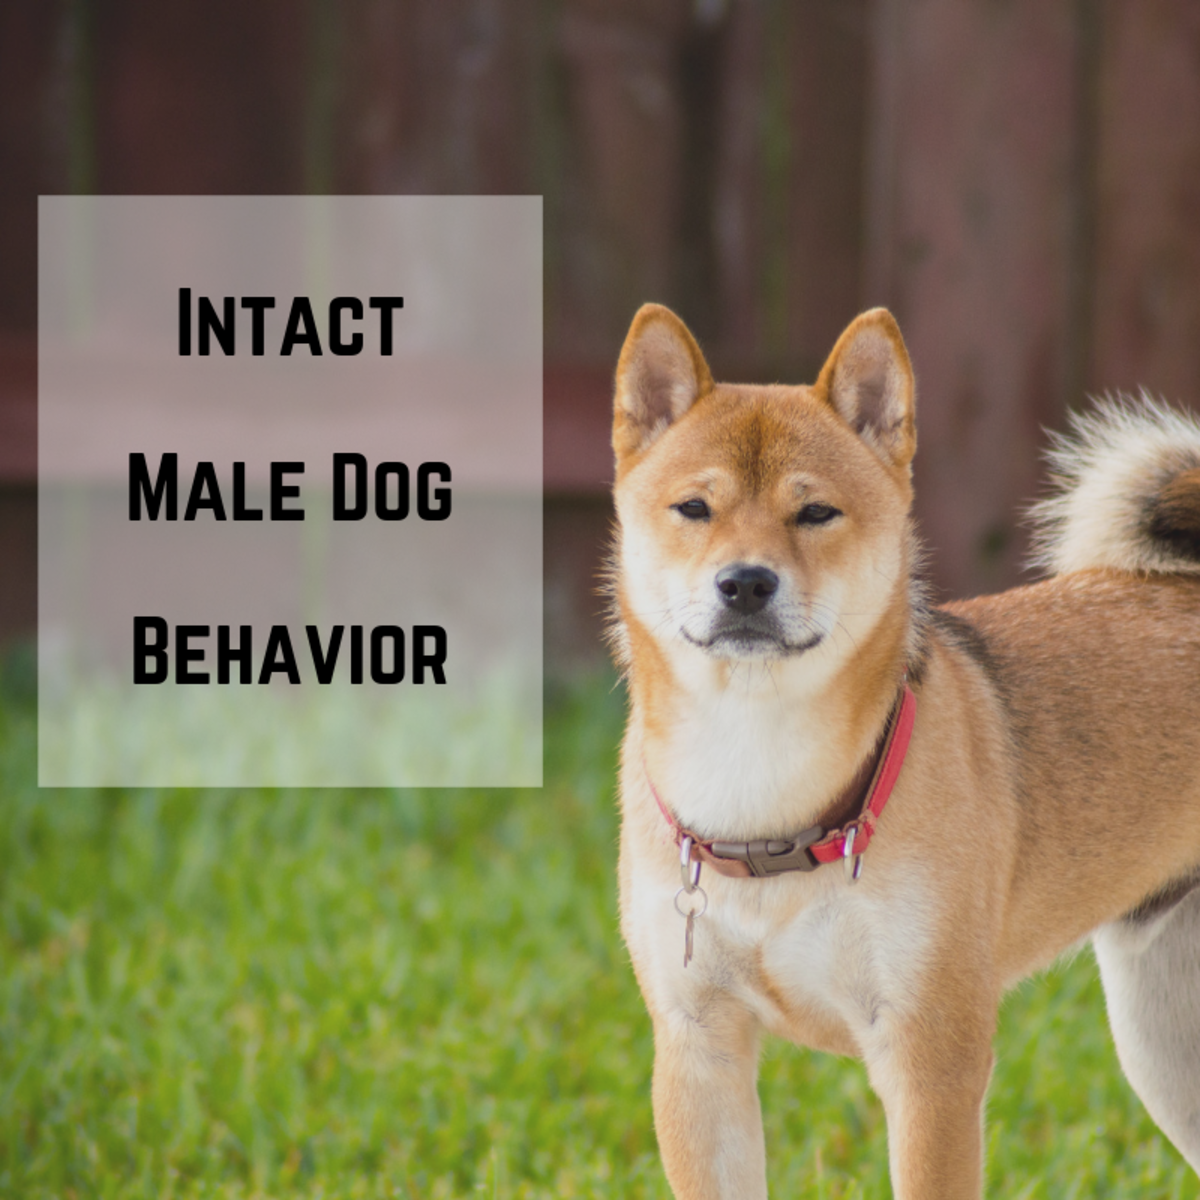 Behaviors of Intact Male Dogs